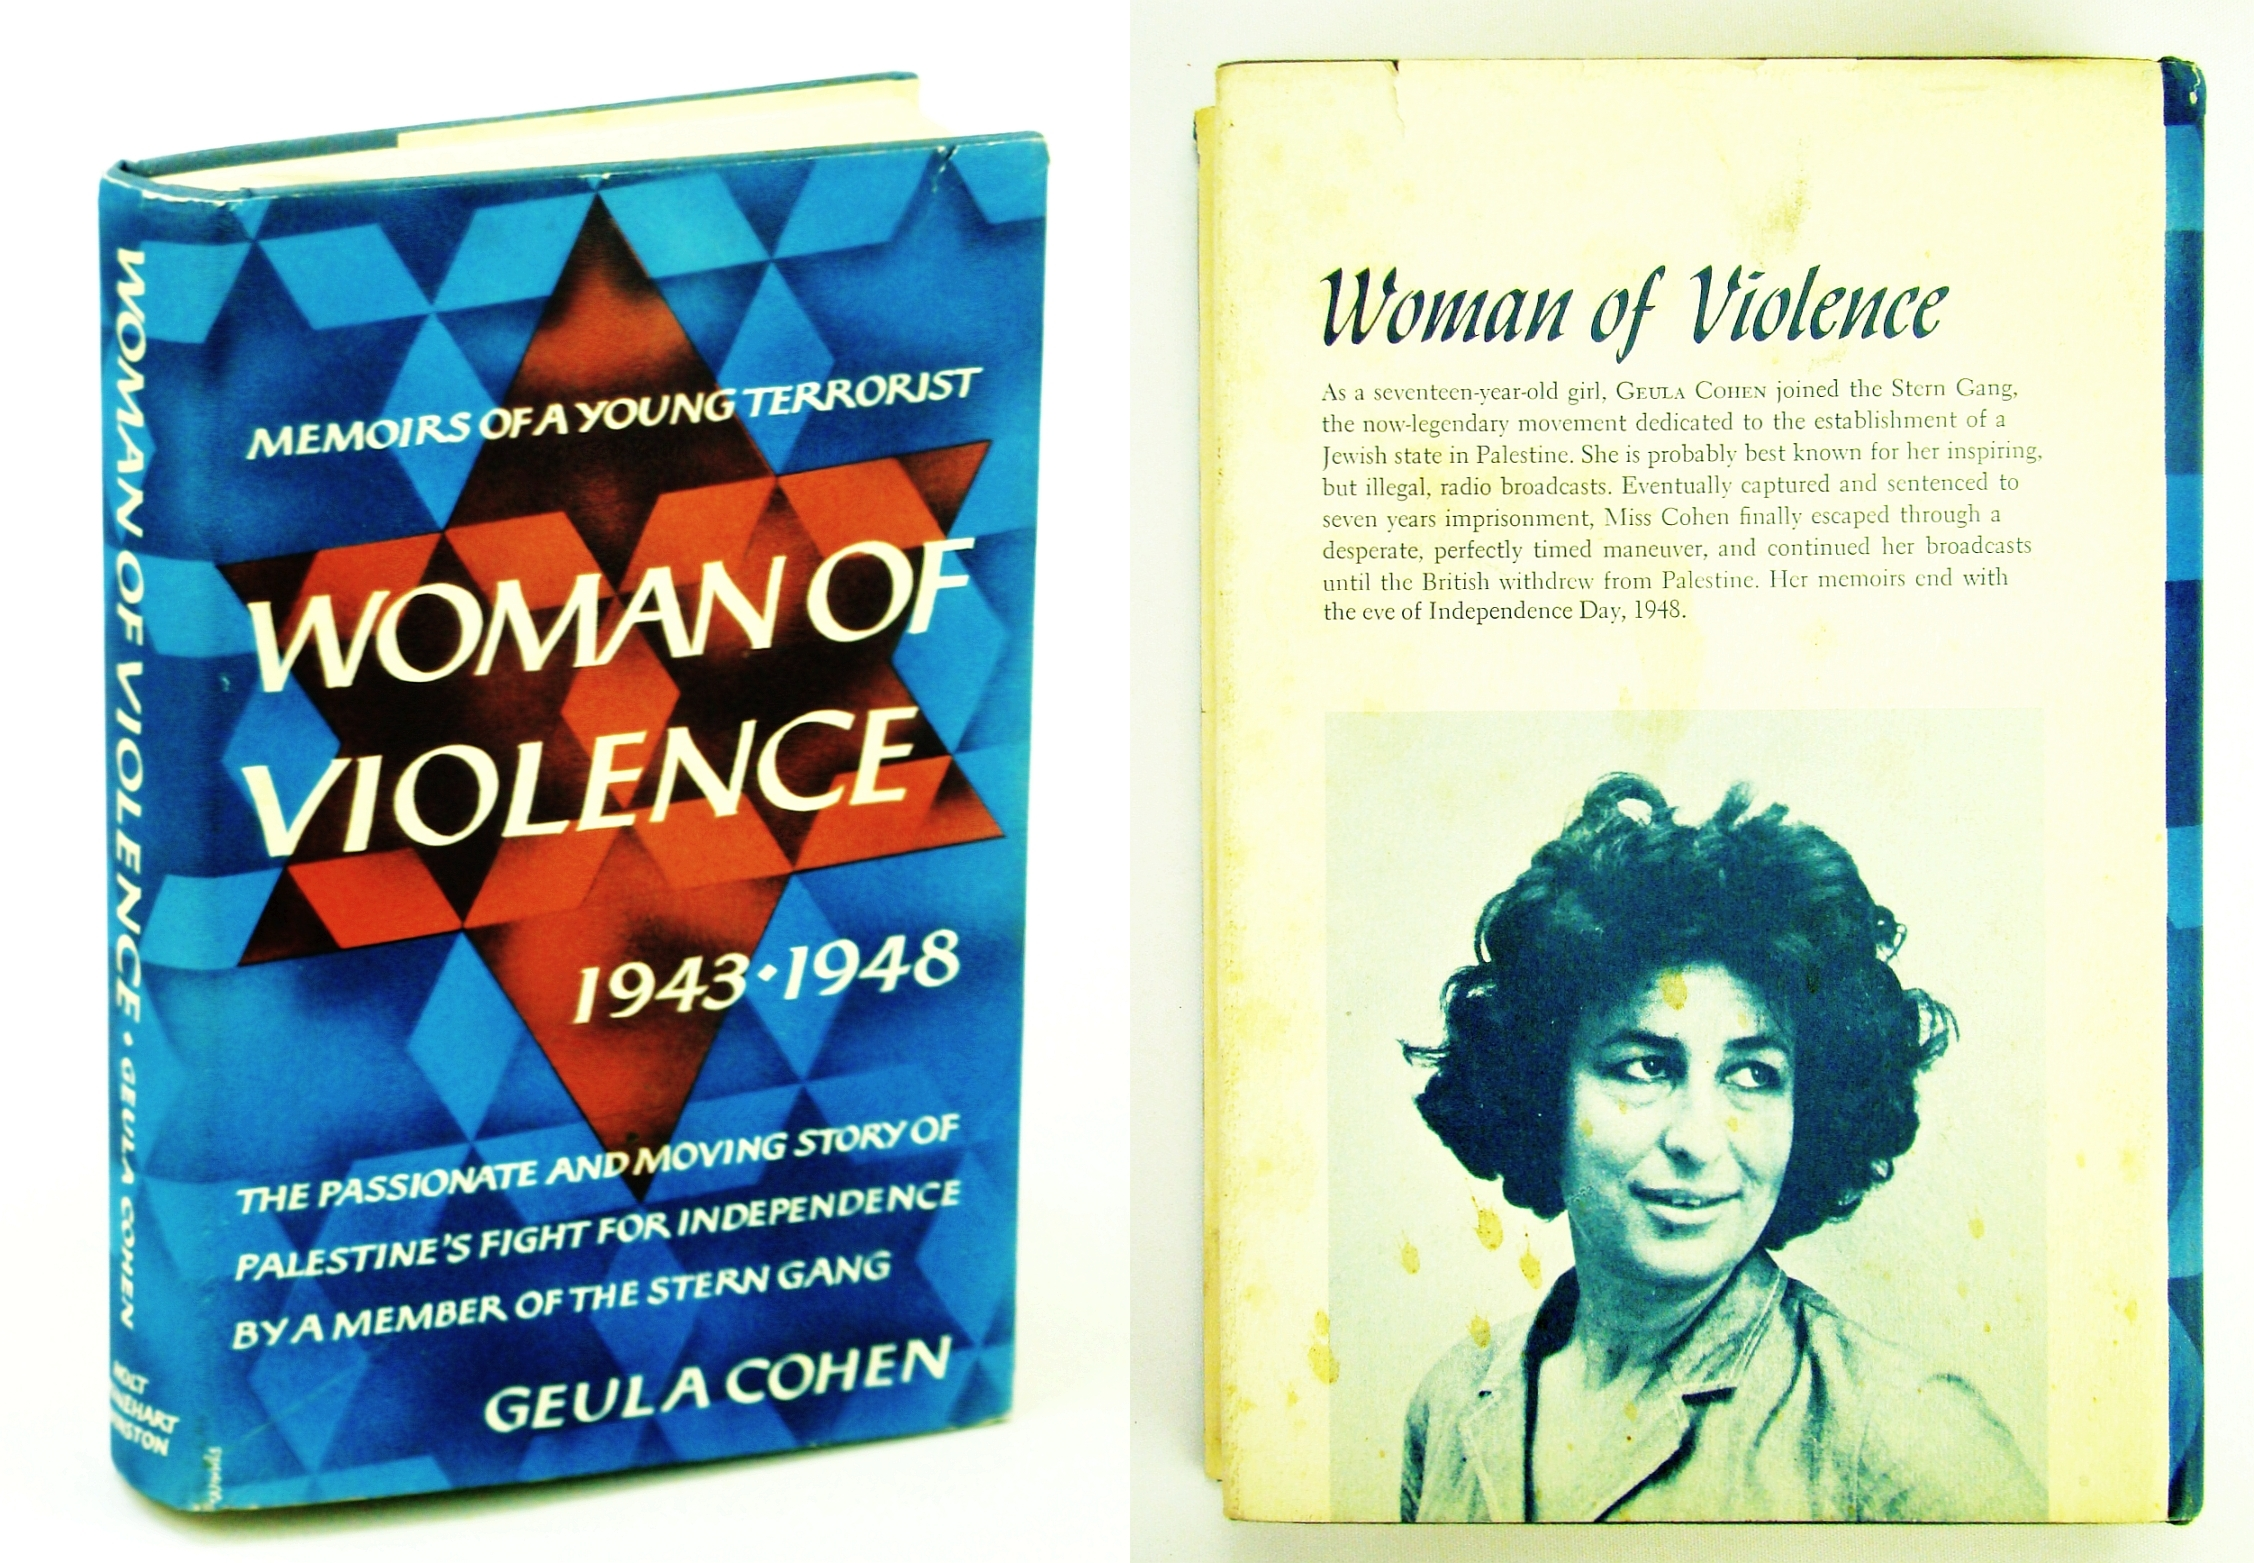 Woman of Violence: Memoirs of a Young Terrorist, 1943-1948